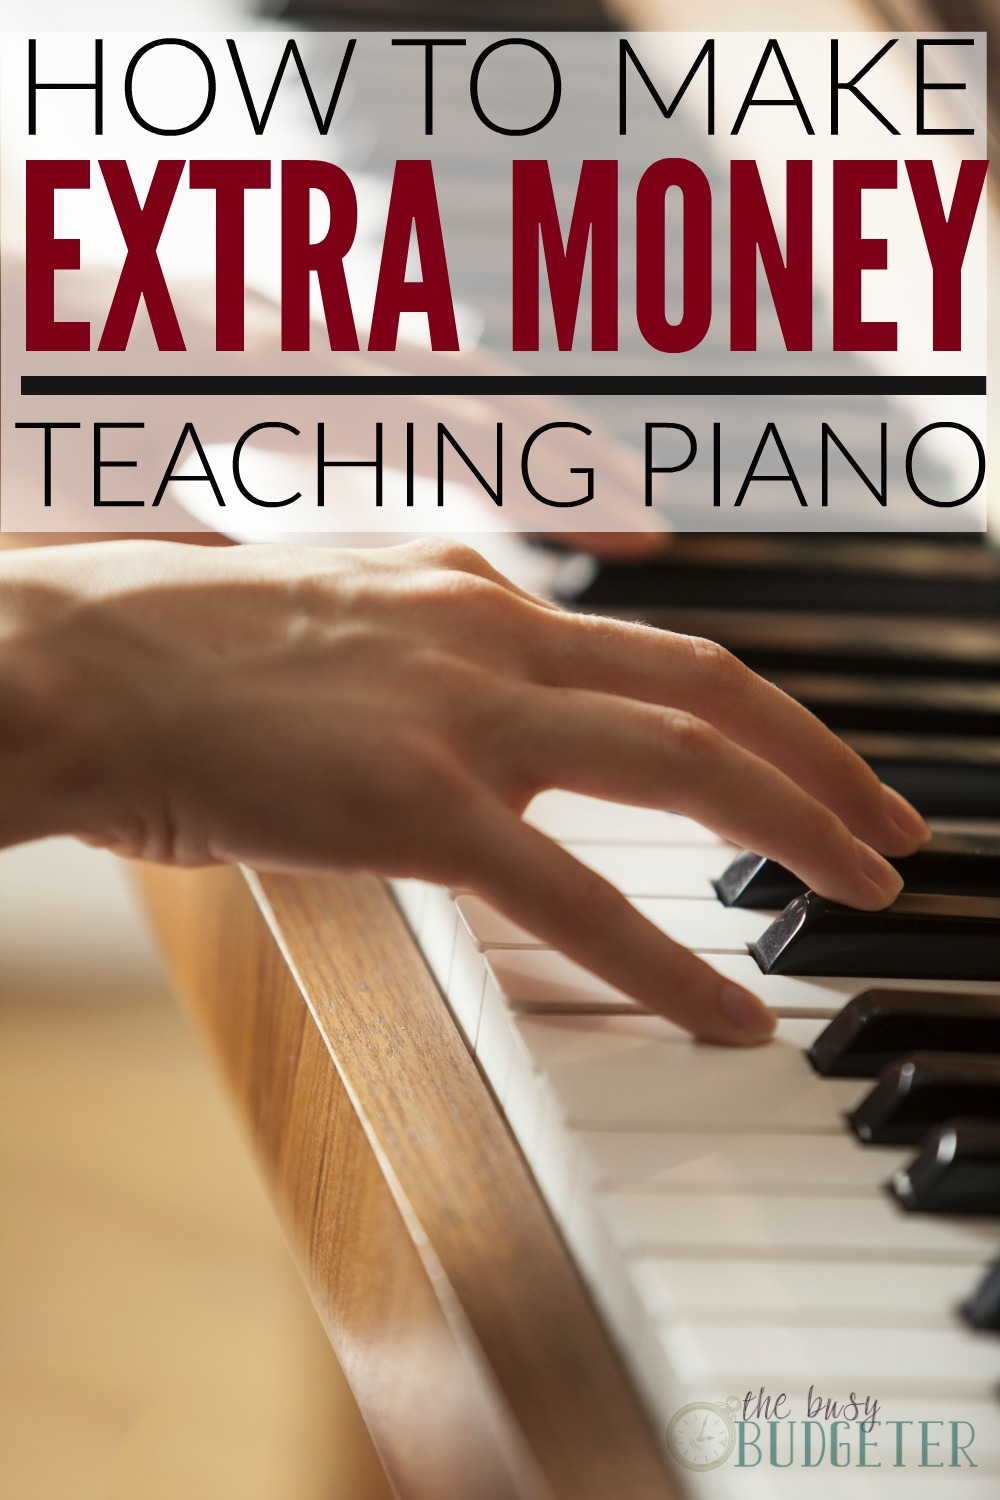 How to make extra money teaching piano. What a genius freaking idea! I took lesson through school and could easily make a little extra money teaching piano lessons to kids! What a great idea to get out of debt by making extra money!